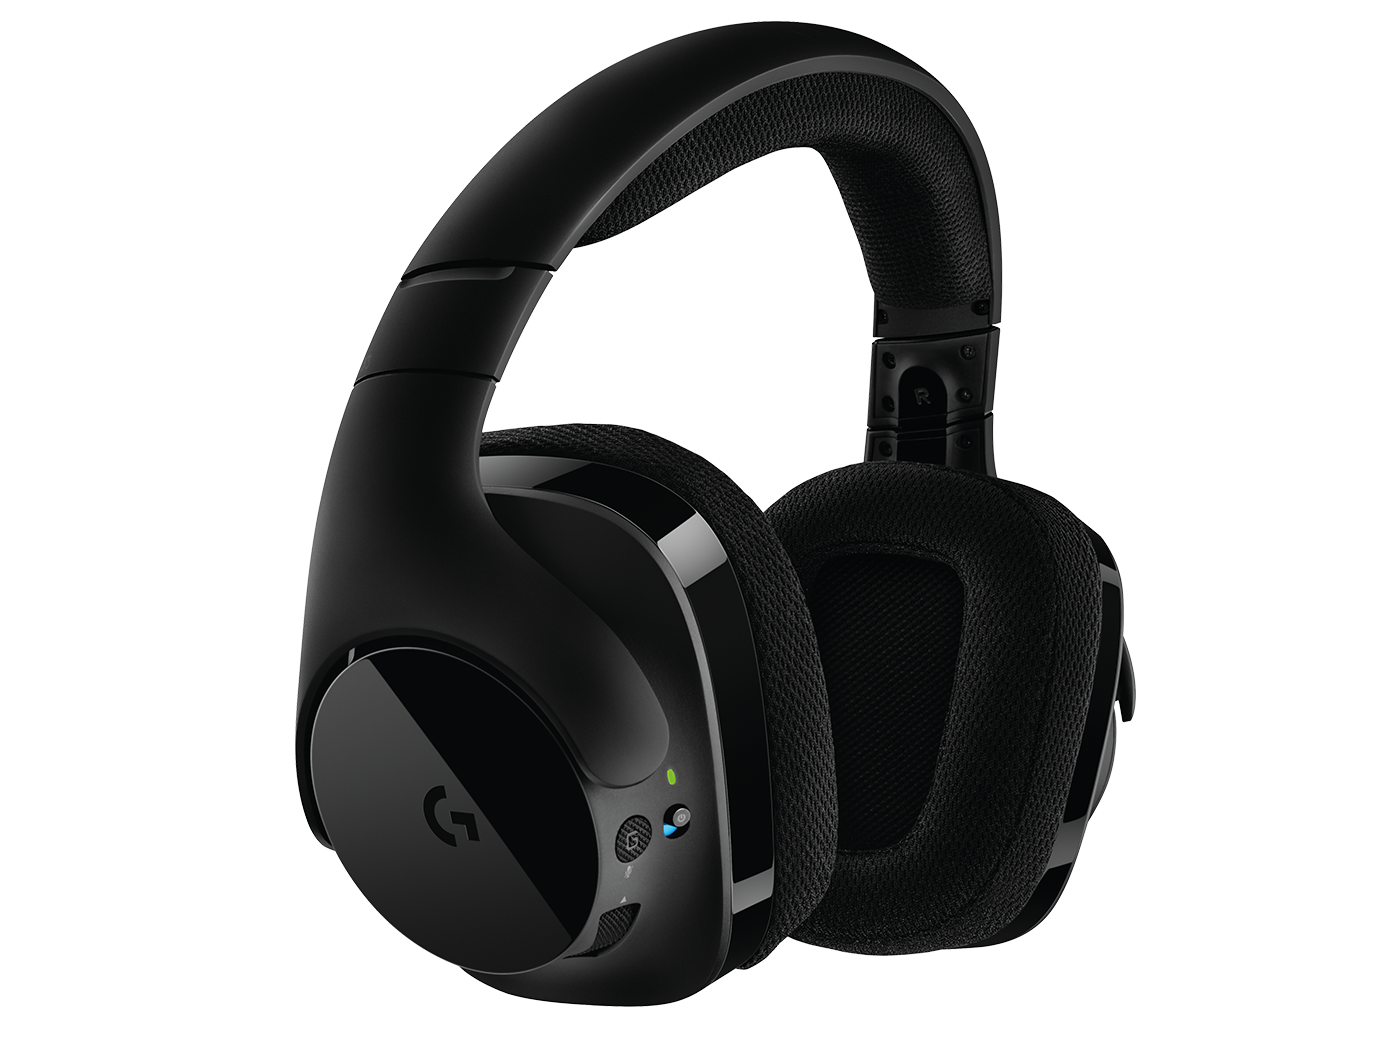 G533 Wireless